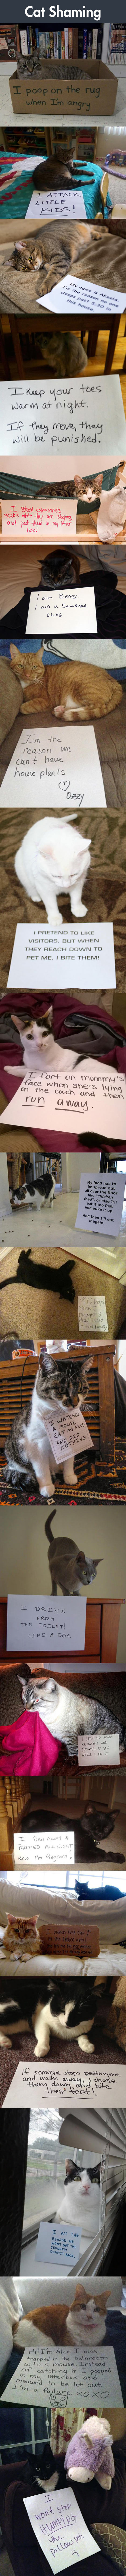 cool-cat-shaming-signs-cute